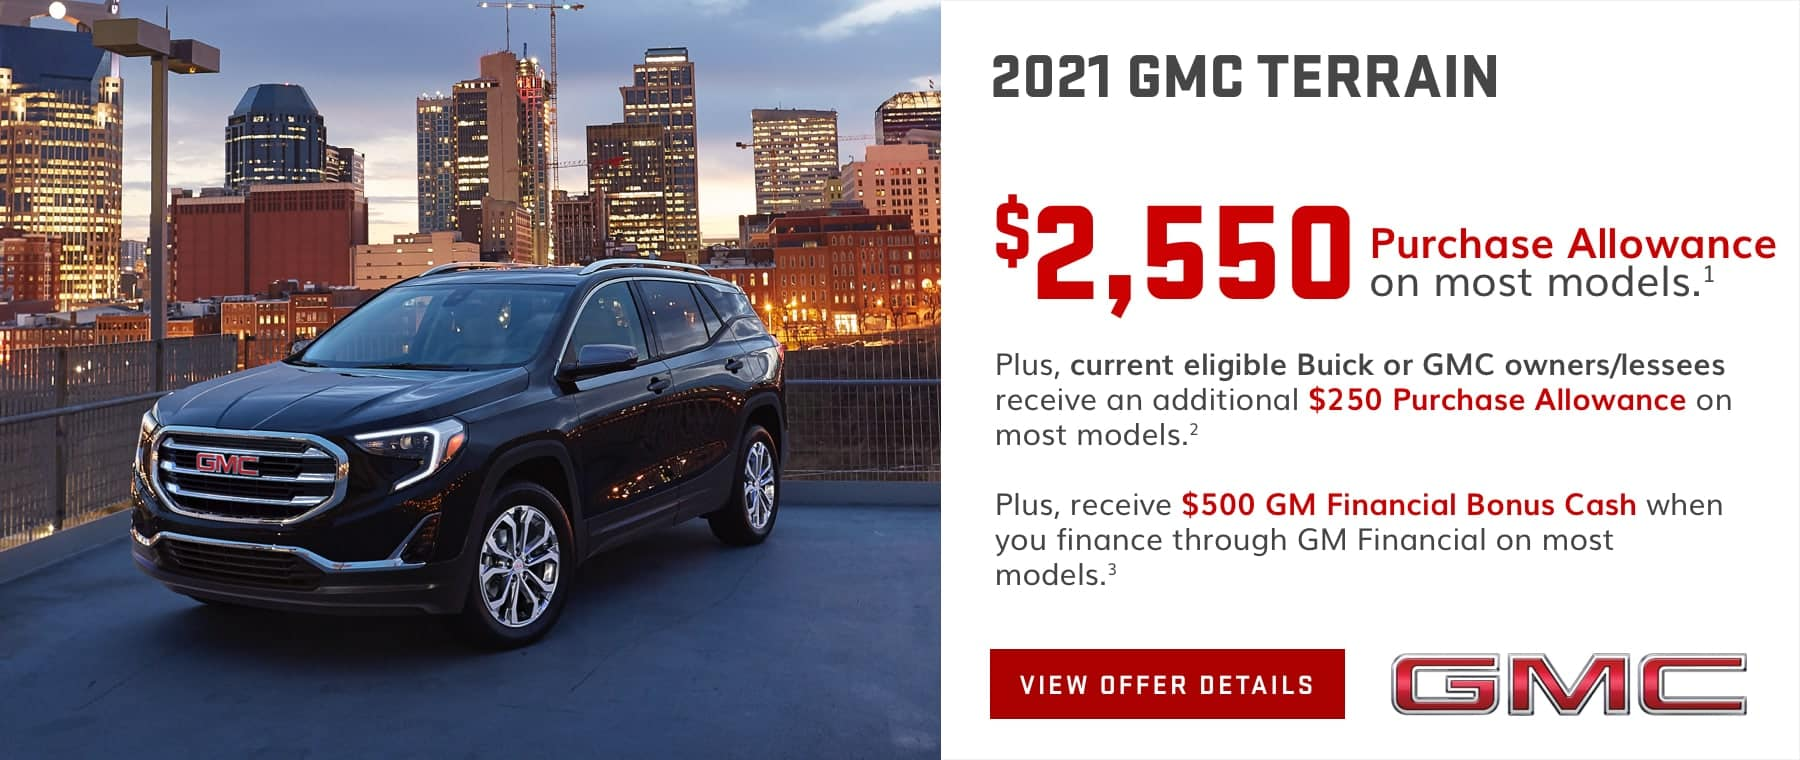 $2,550 Purchase Allowance on most models.1 Plus, current eligible Buick or GMC owners/lessees receive an additional $250 Purchase Allowance on most models.2 Plus, receive $500 GM Financial Bonus Cash when you finance through GM Financial on most models.3